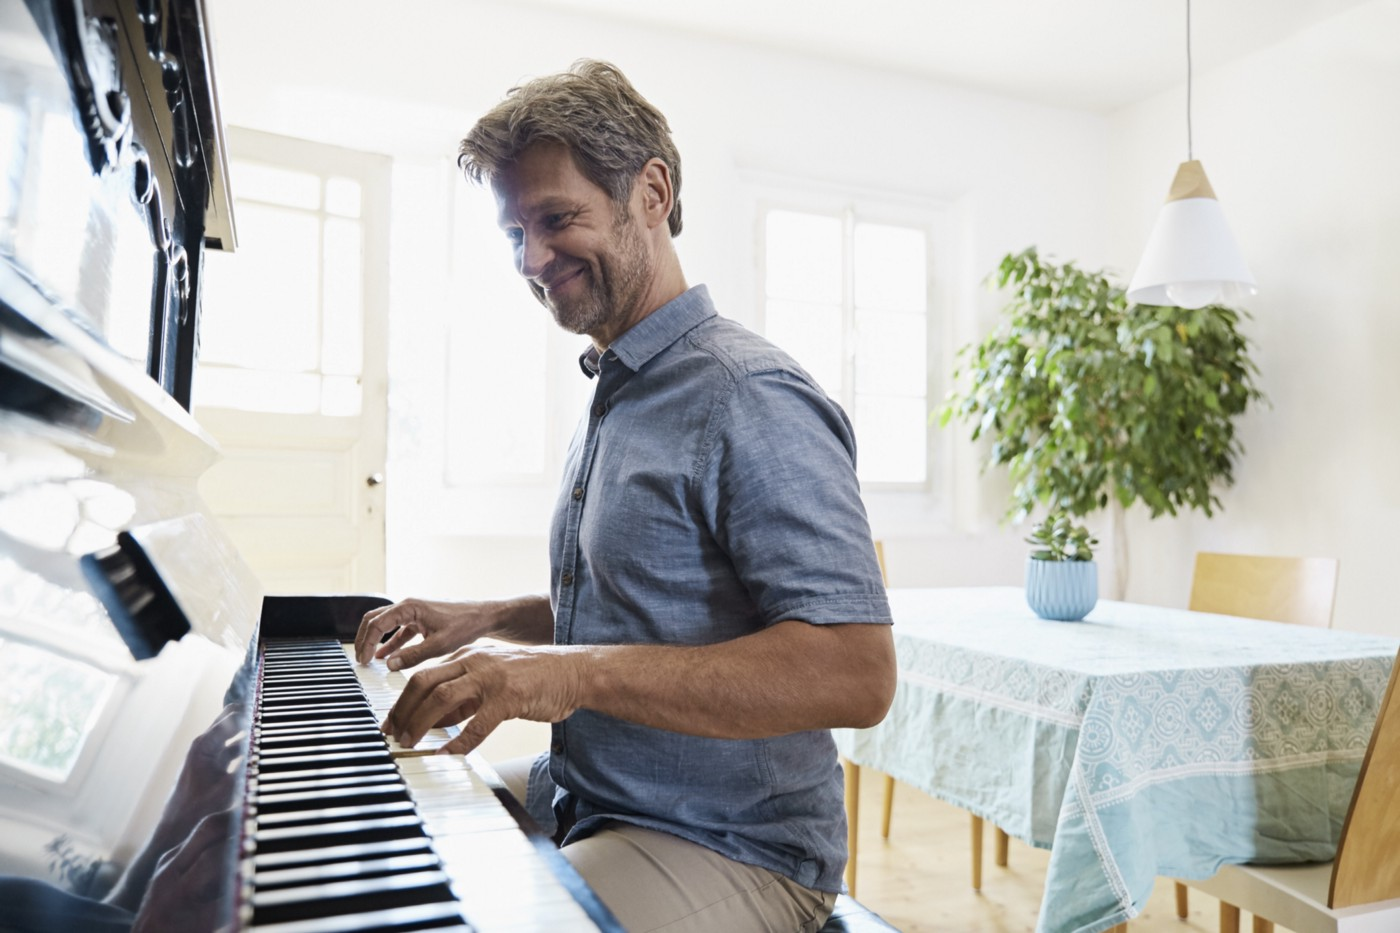 A man practices playing the piano at home.